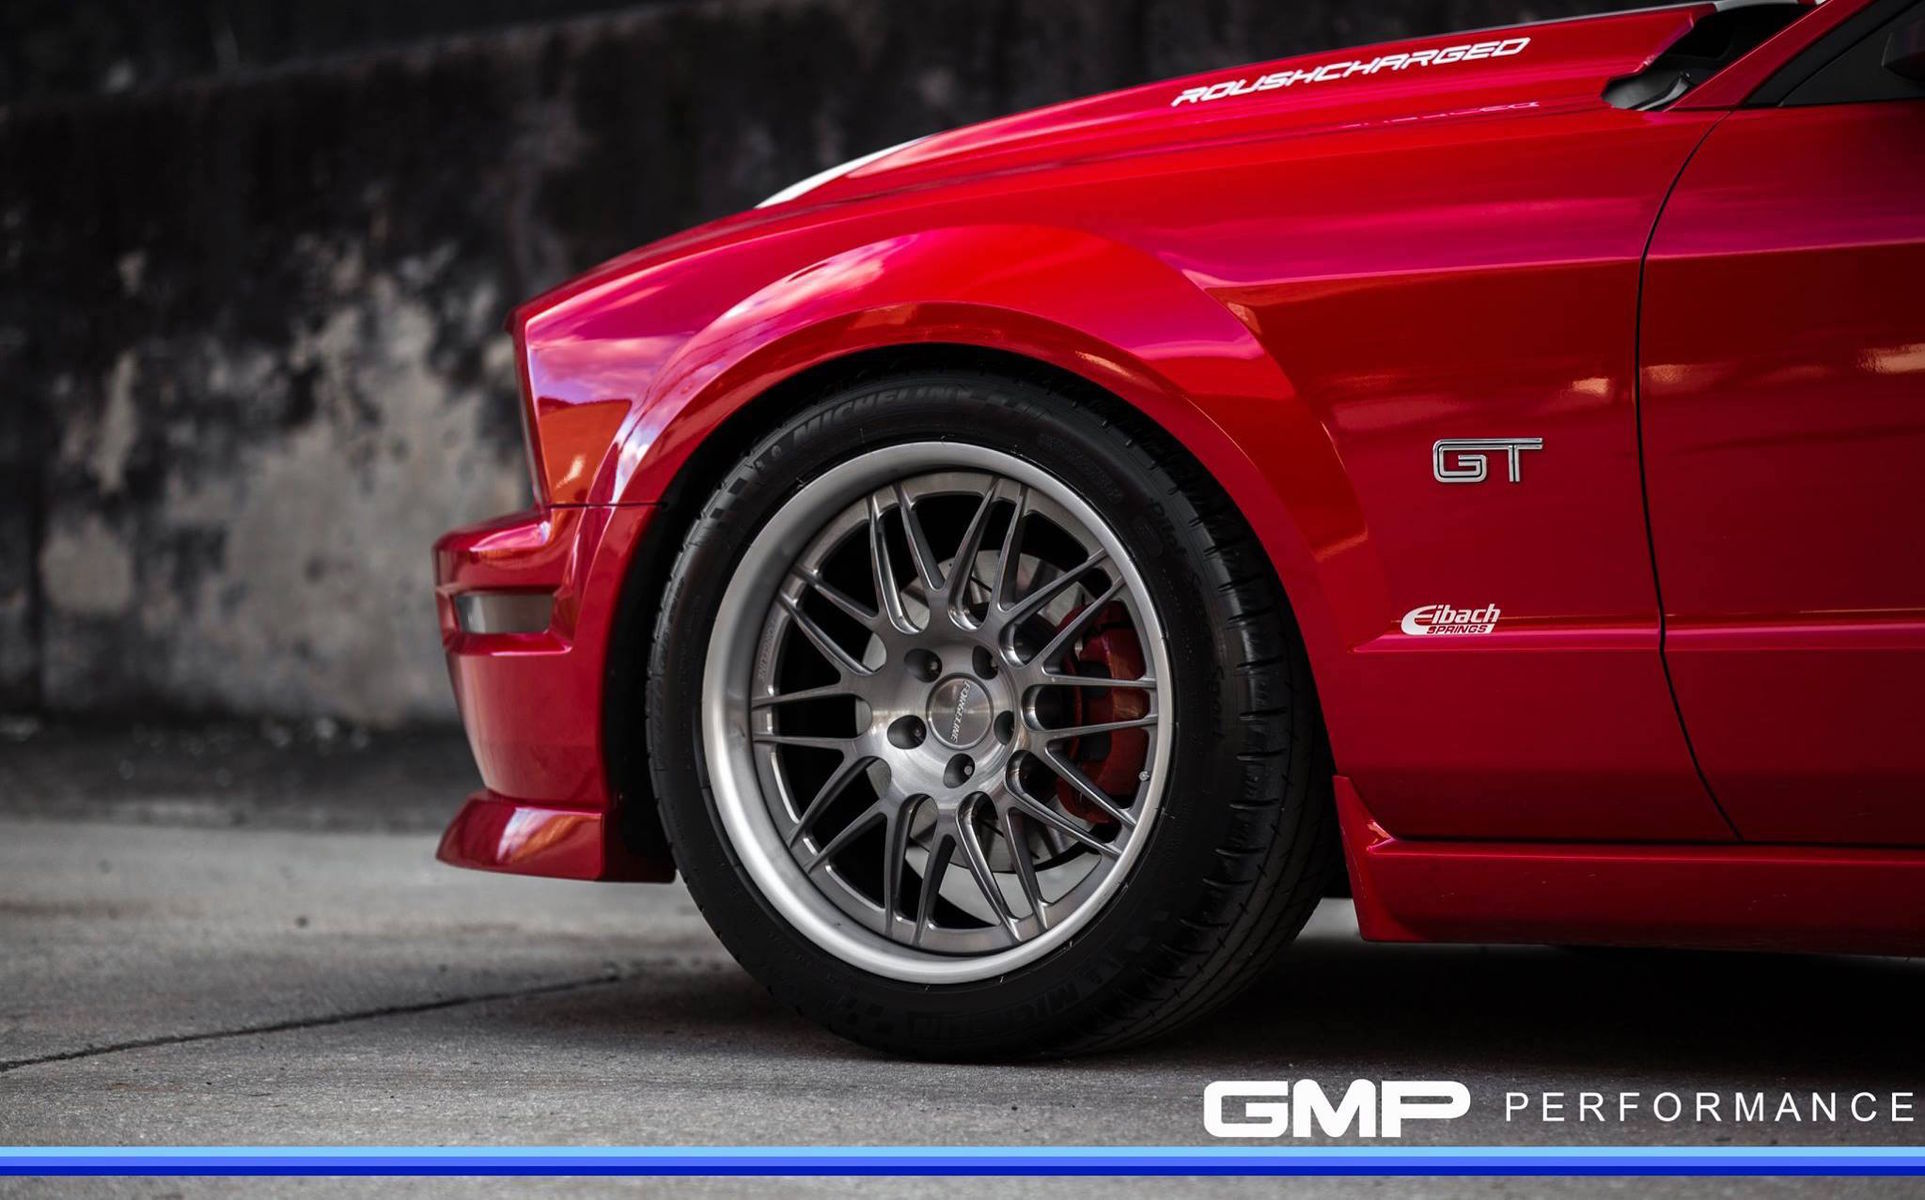 2006 Ford Mustang | Supercharged S197 Ford Mustang GT on Forgeline GX3 Wheels